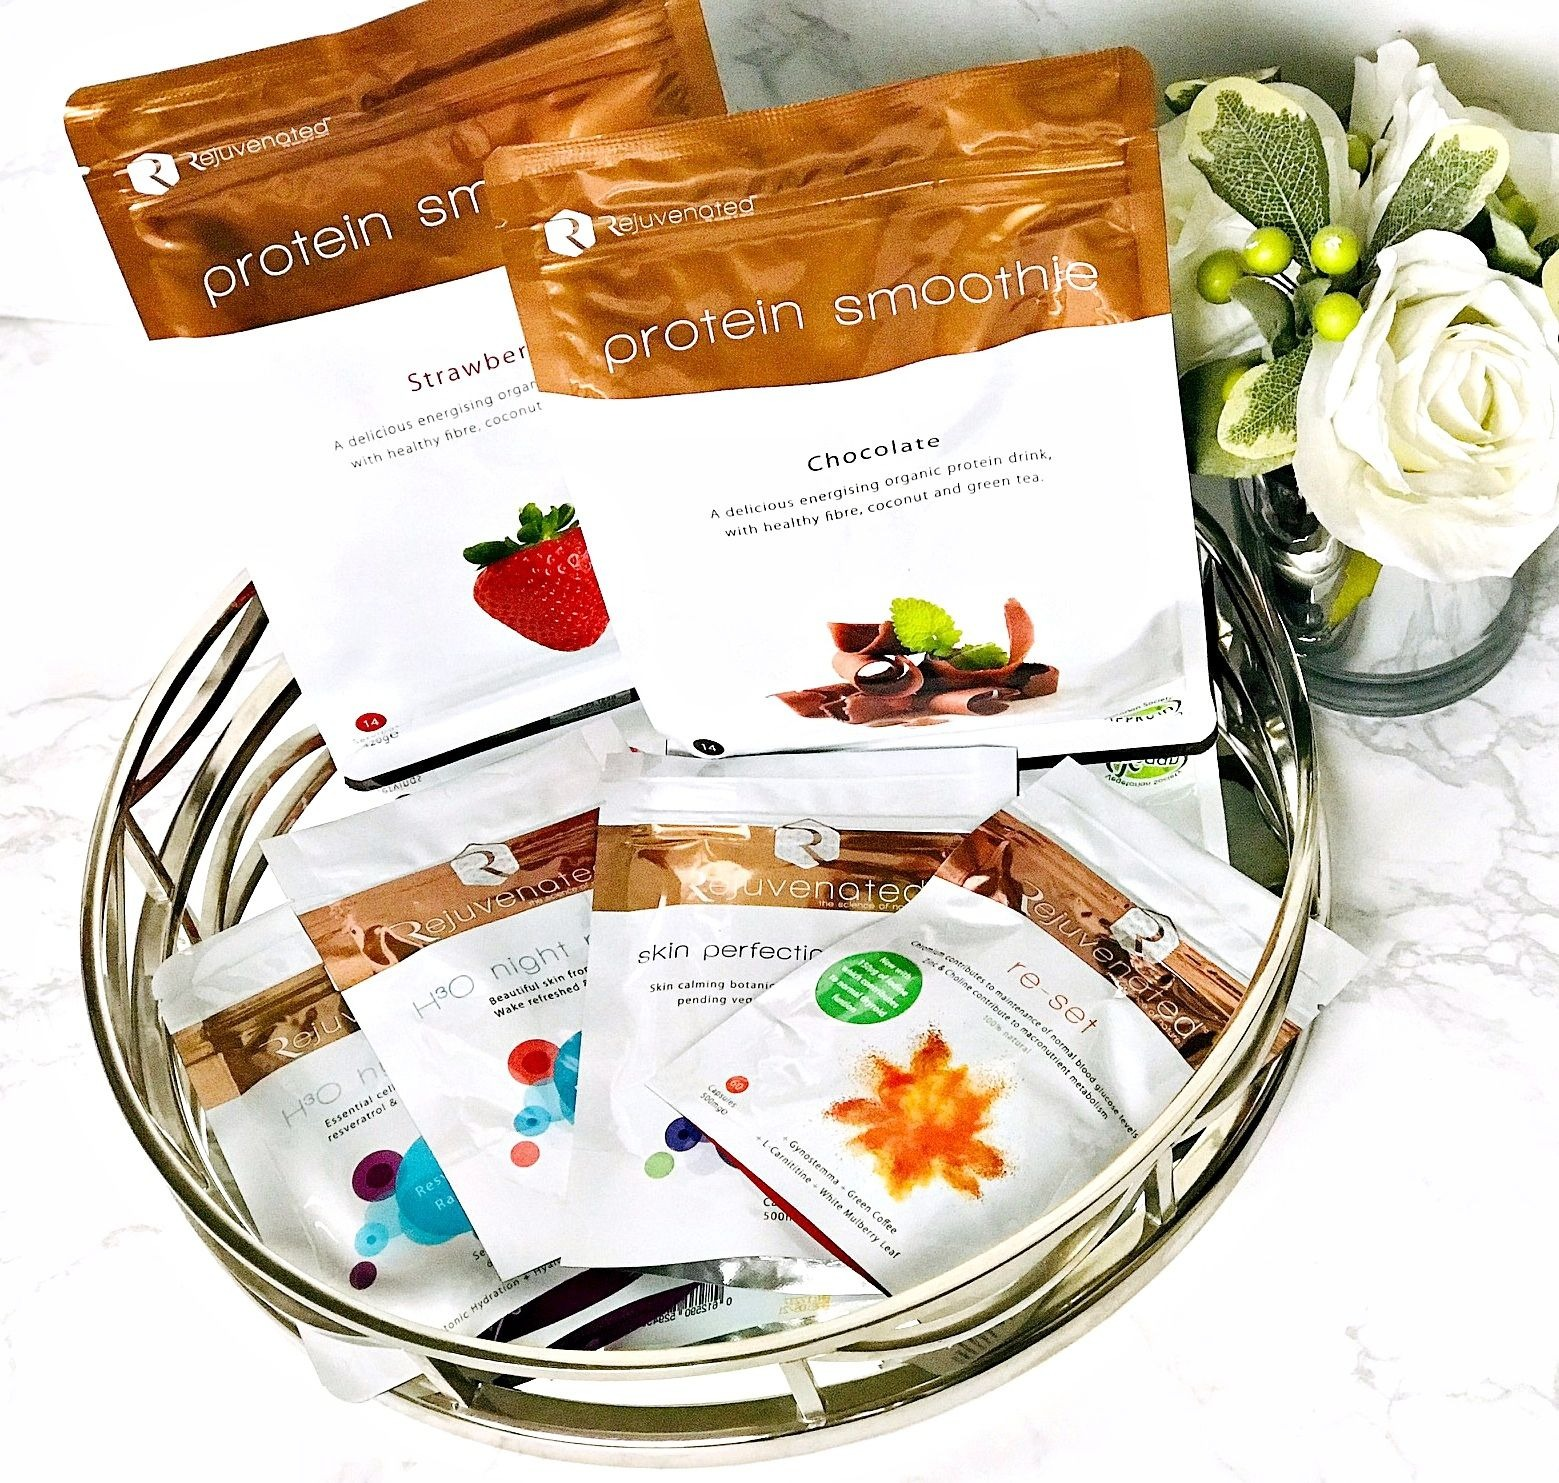 Rejuvenated Re-Set Giveaway, January Detox Giveaway, Detox giveaway